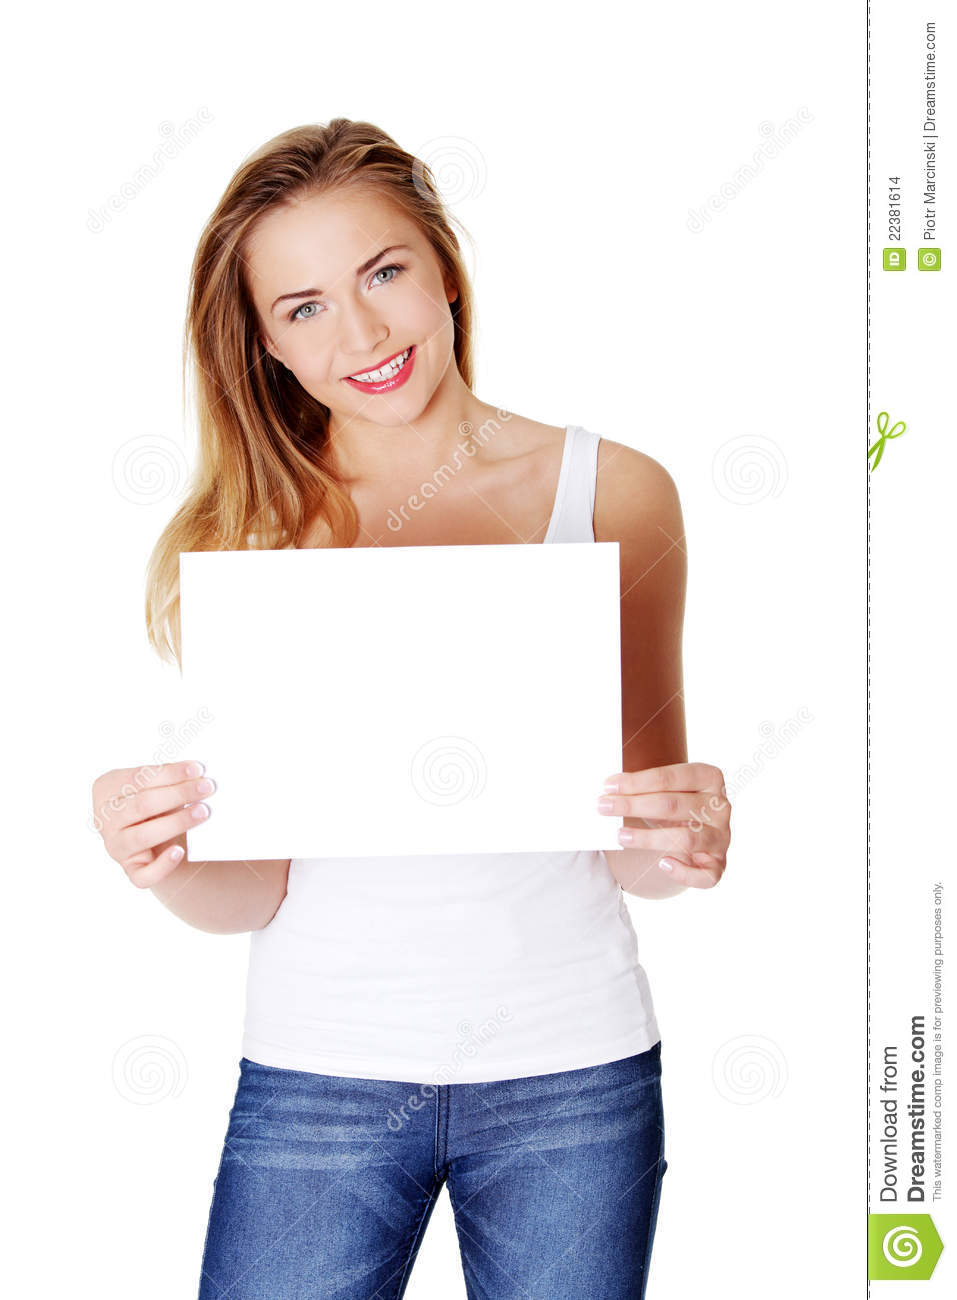 Cheerful Teen Girl Holding Blank White Paper Stock Images - Image ...